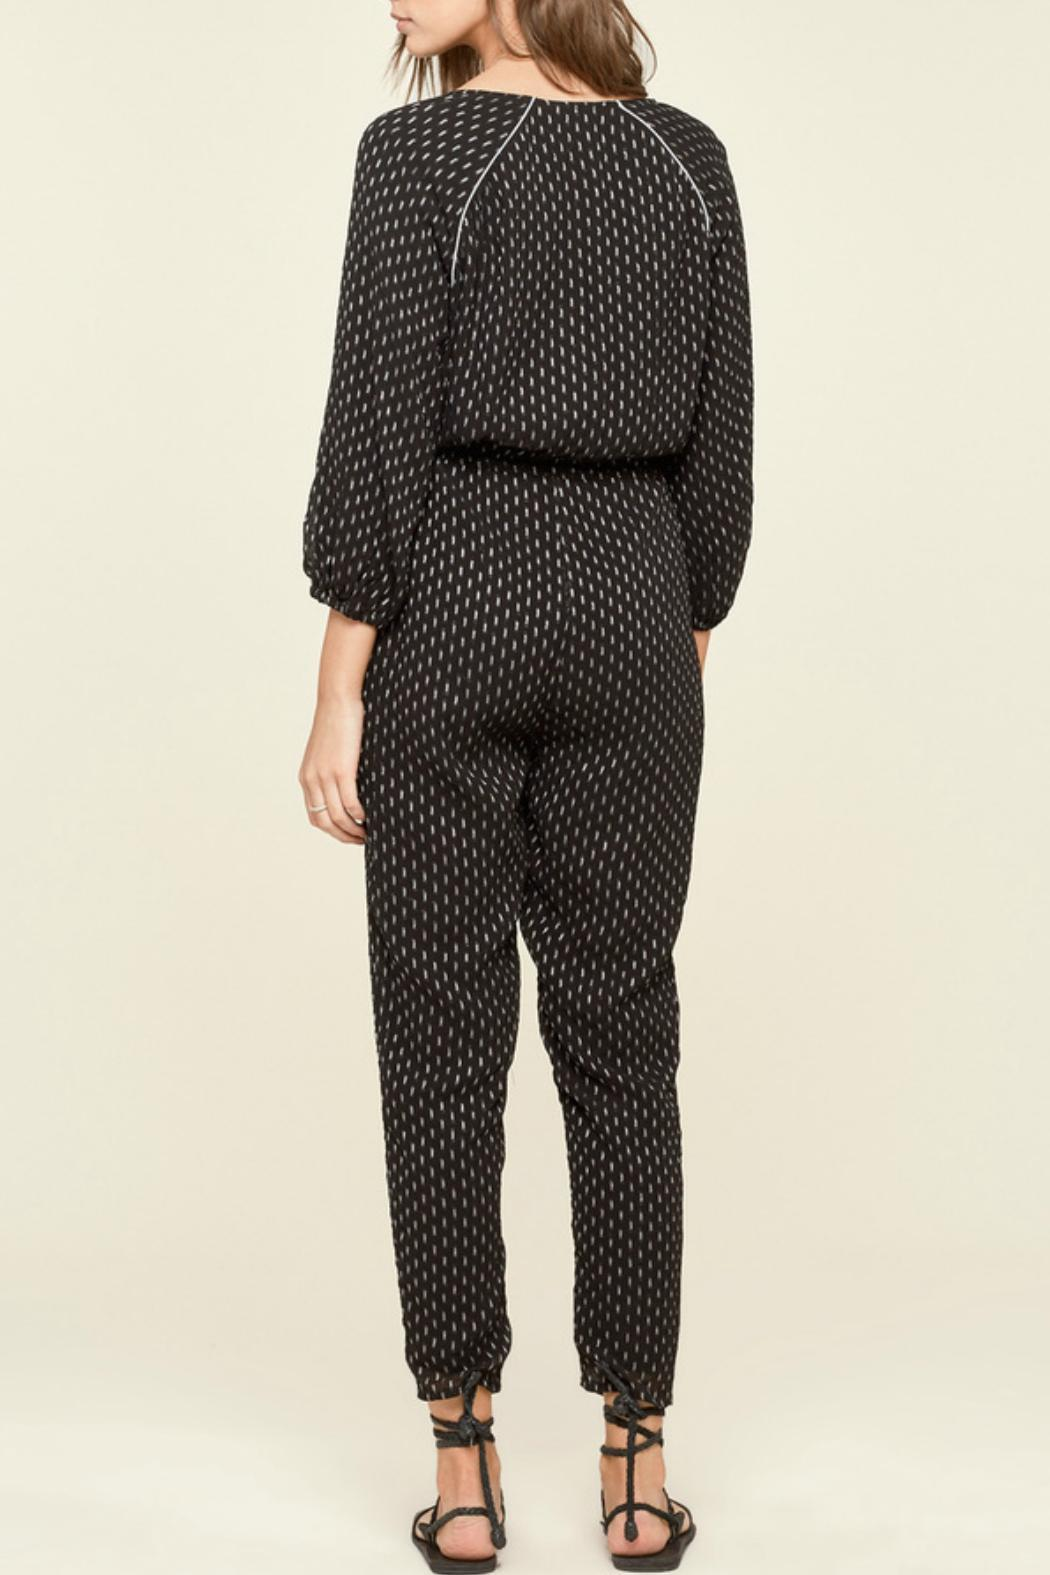 AMUSE SOCIETY Moroccan Print Jumper - Side Cropped Image